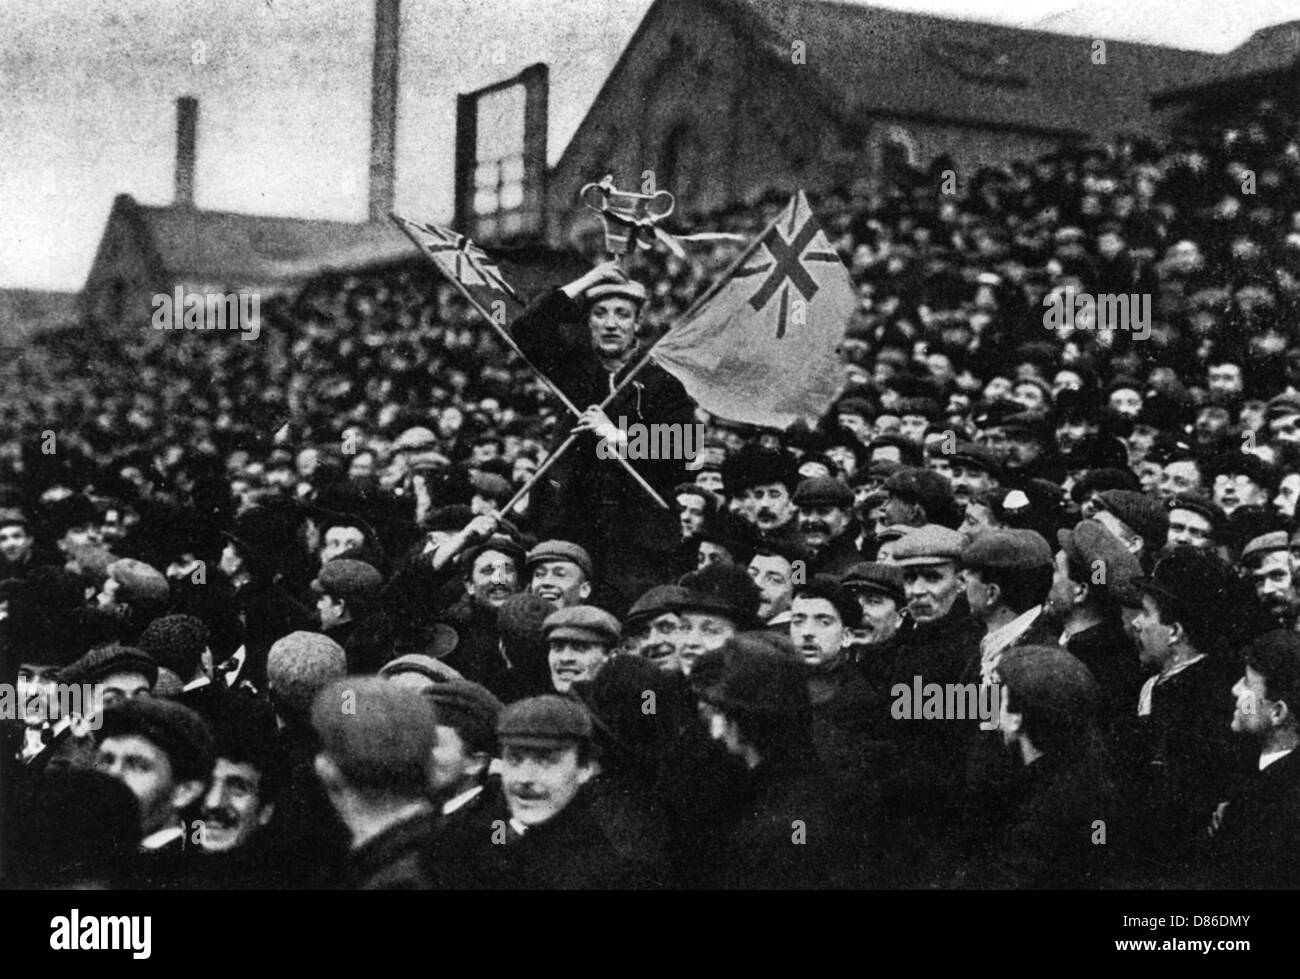 Football The Cup Tie Crowd At Derby  1903 - Stock Image